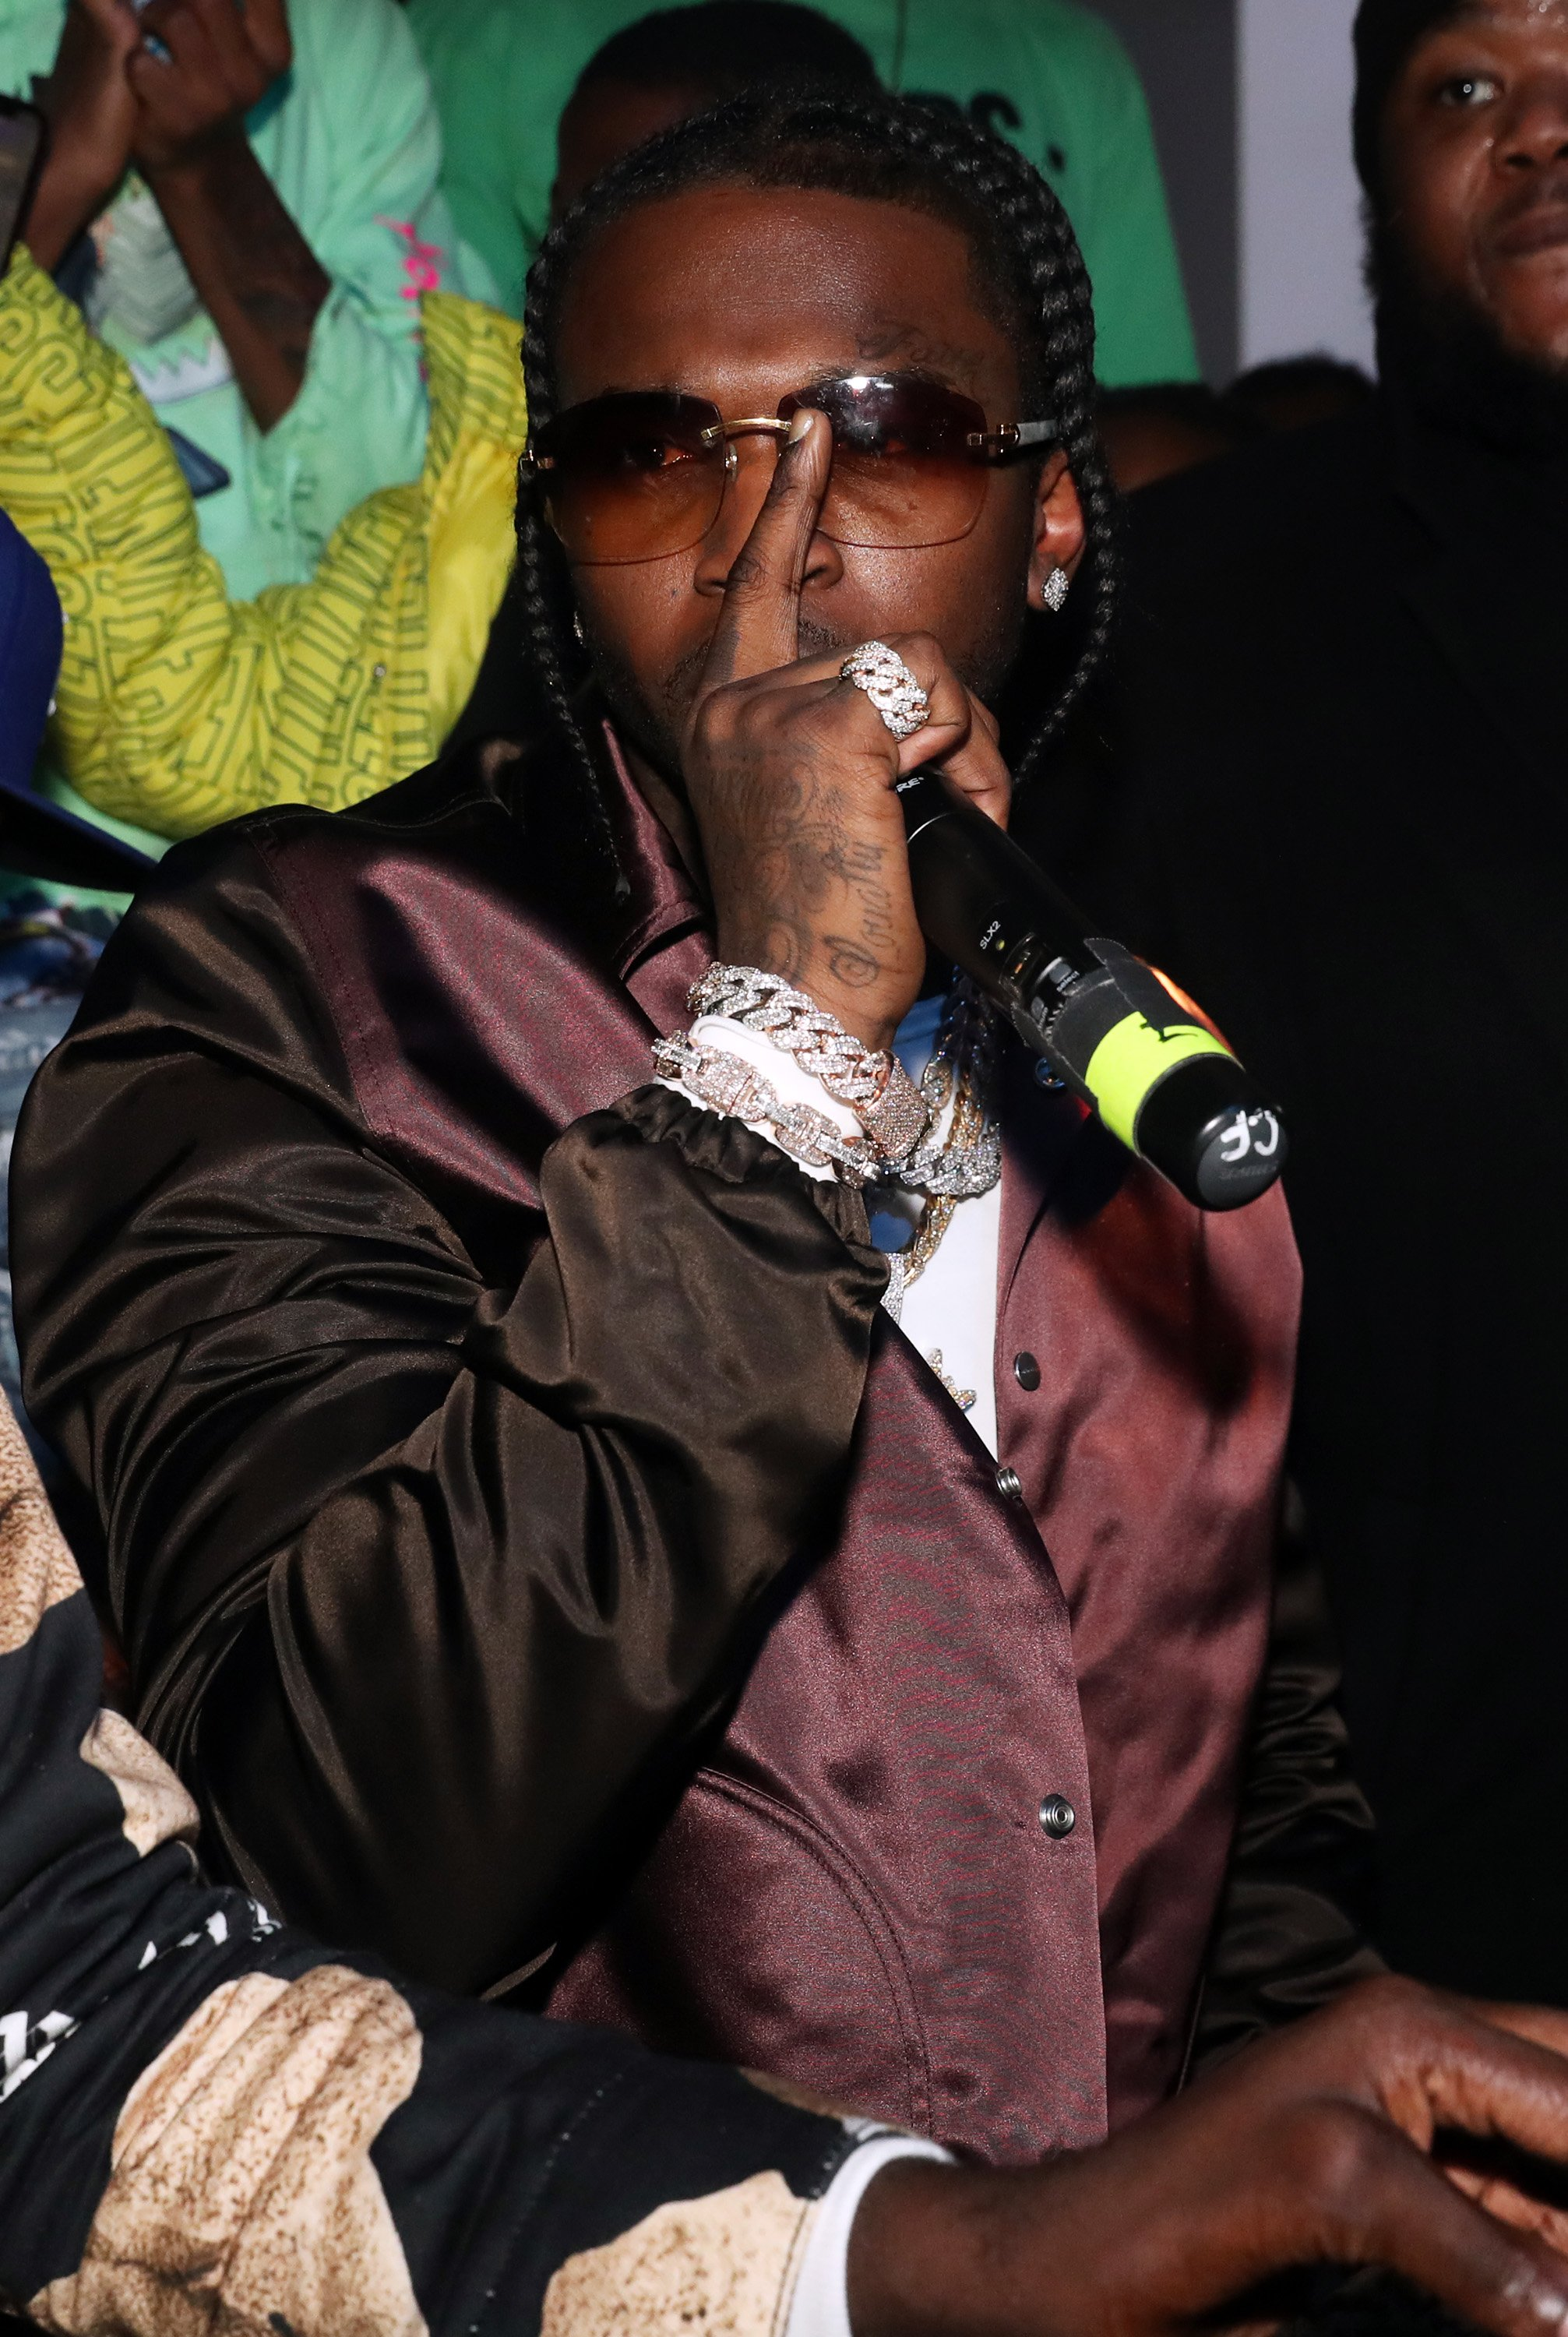 Pop Smoke performs at the Pop Smoke Listening Party at Villain on February 06, 2020 | Photo : Getty Images